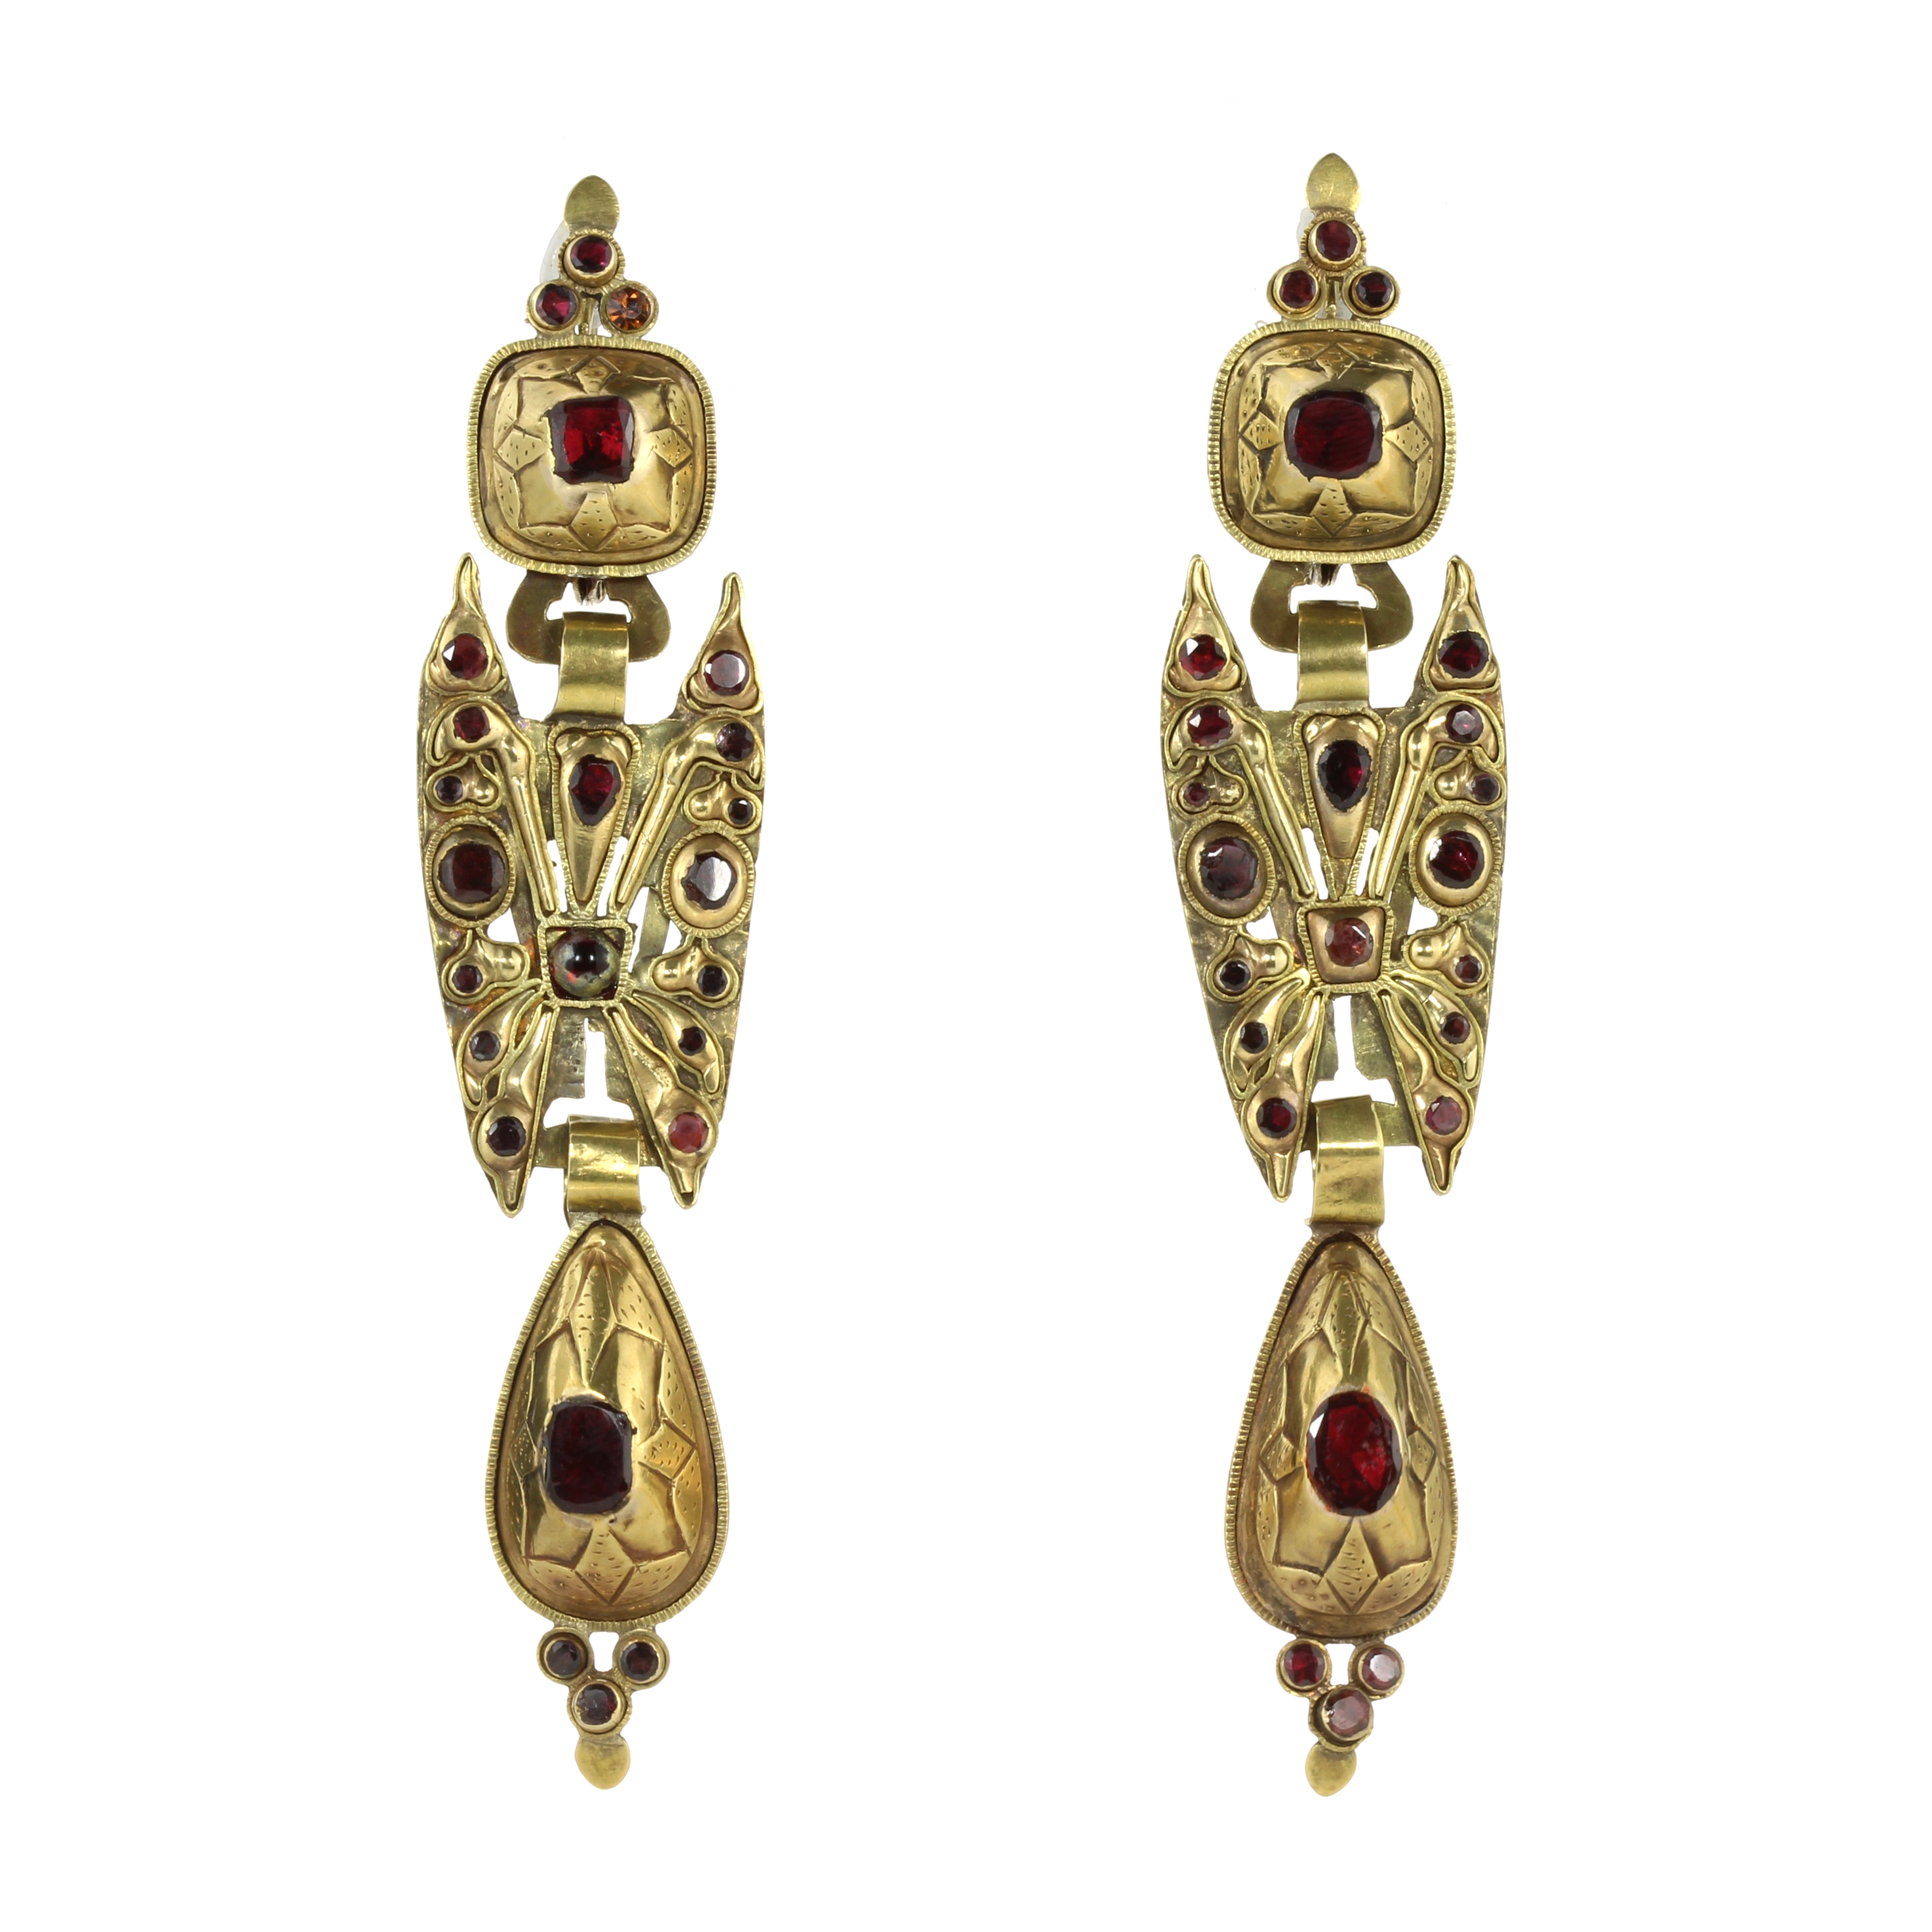 Los 30 - A PAIR OF ANTIQUE GARNET EARRINGS, CATALAN CIRCA 1790 in high carat yellow gold, each formed of